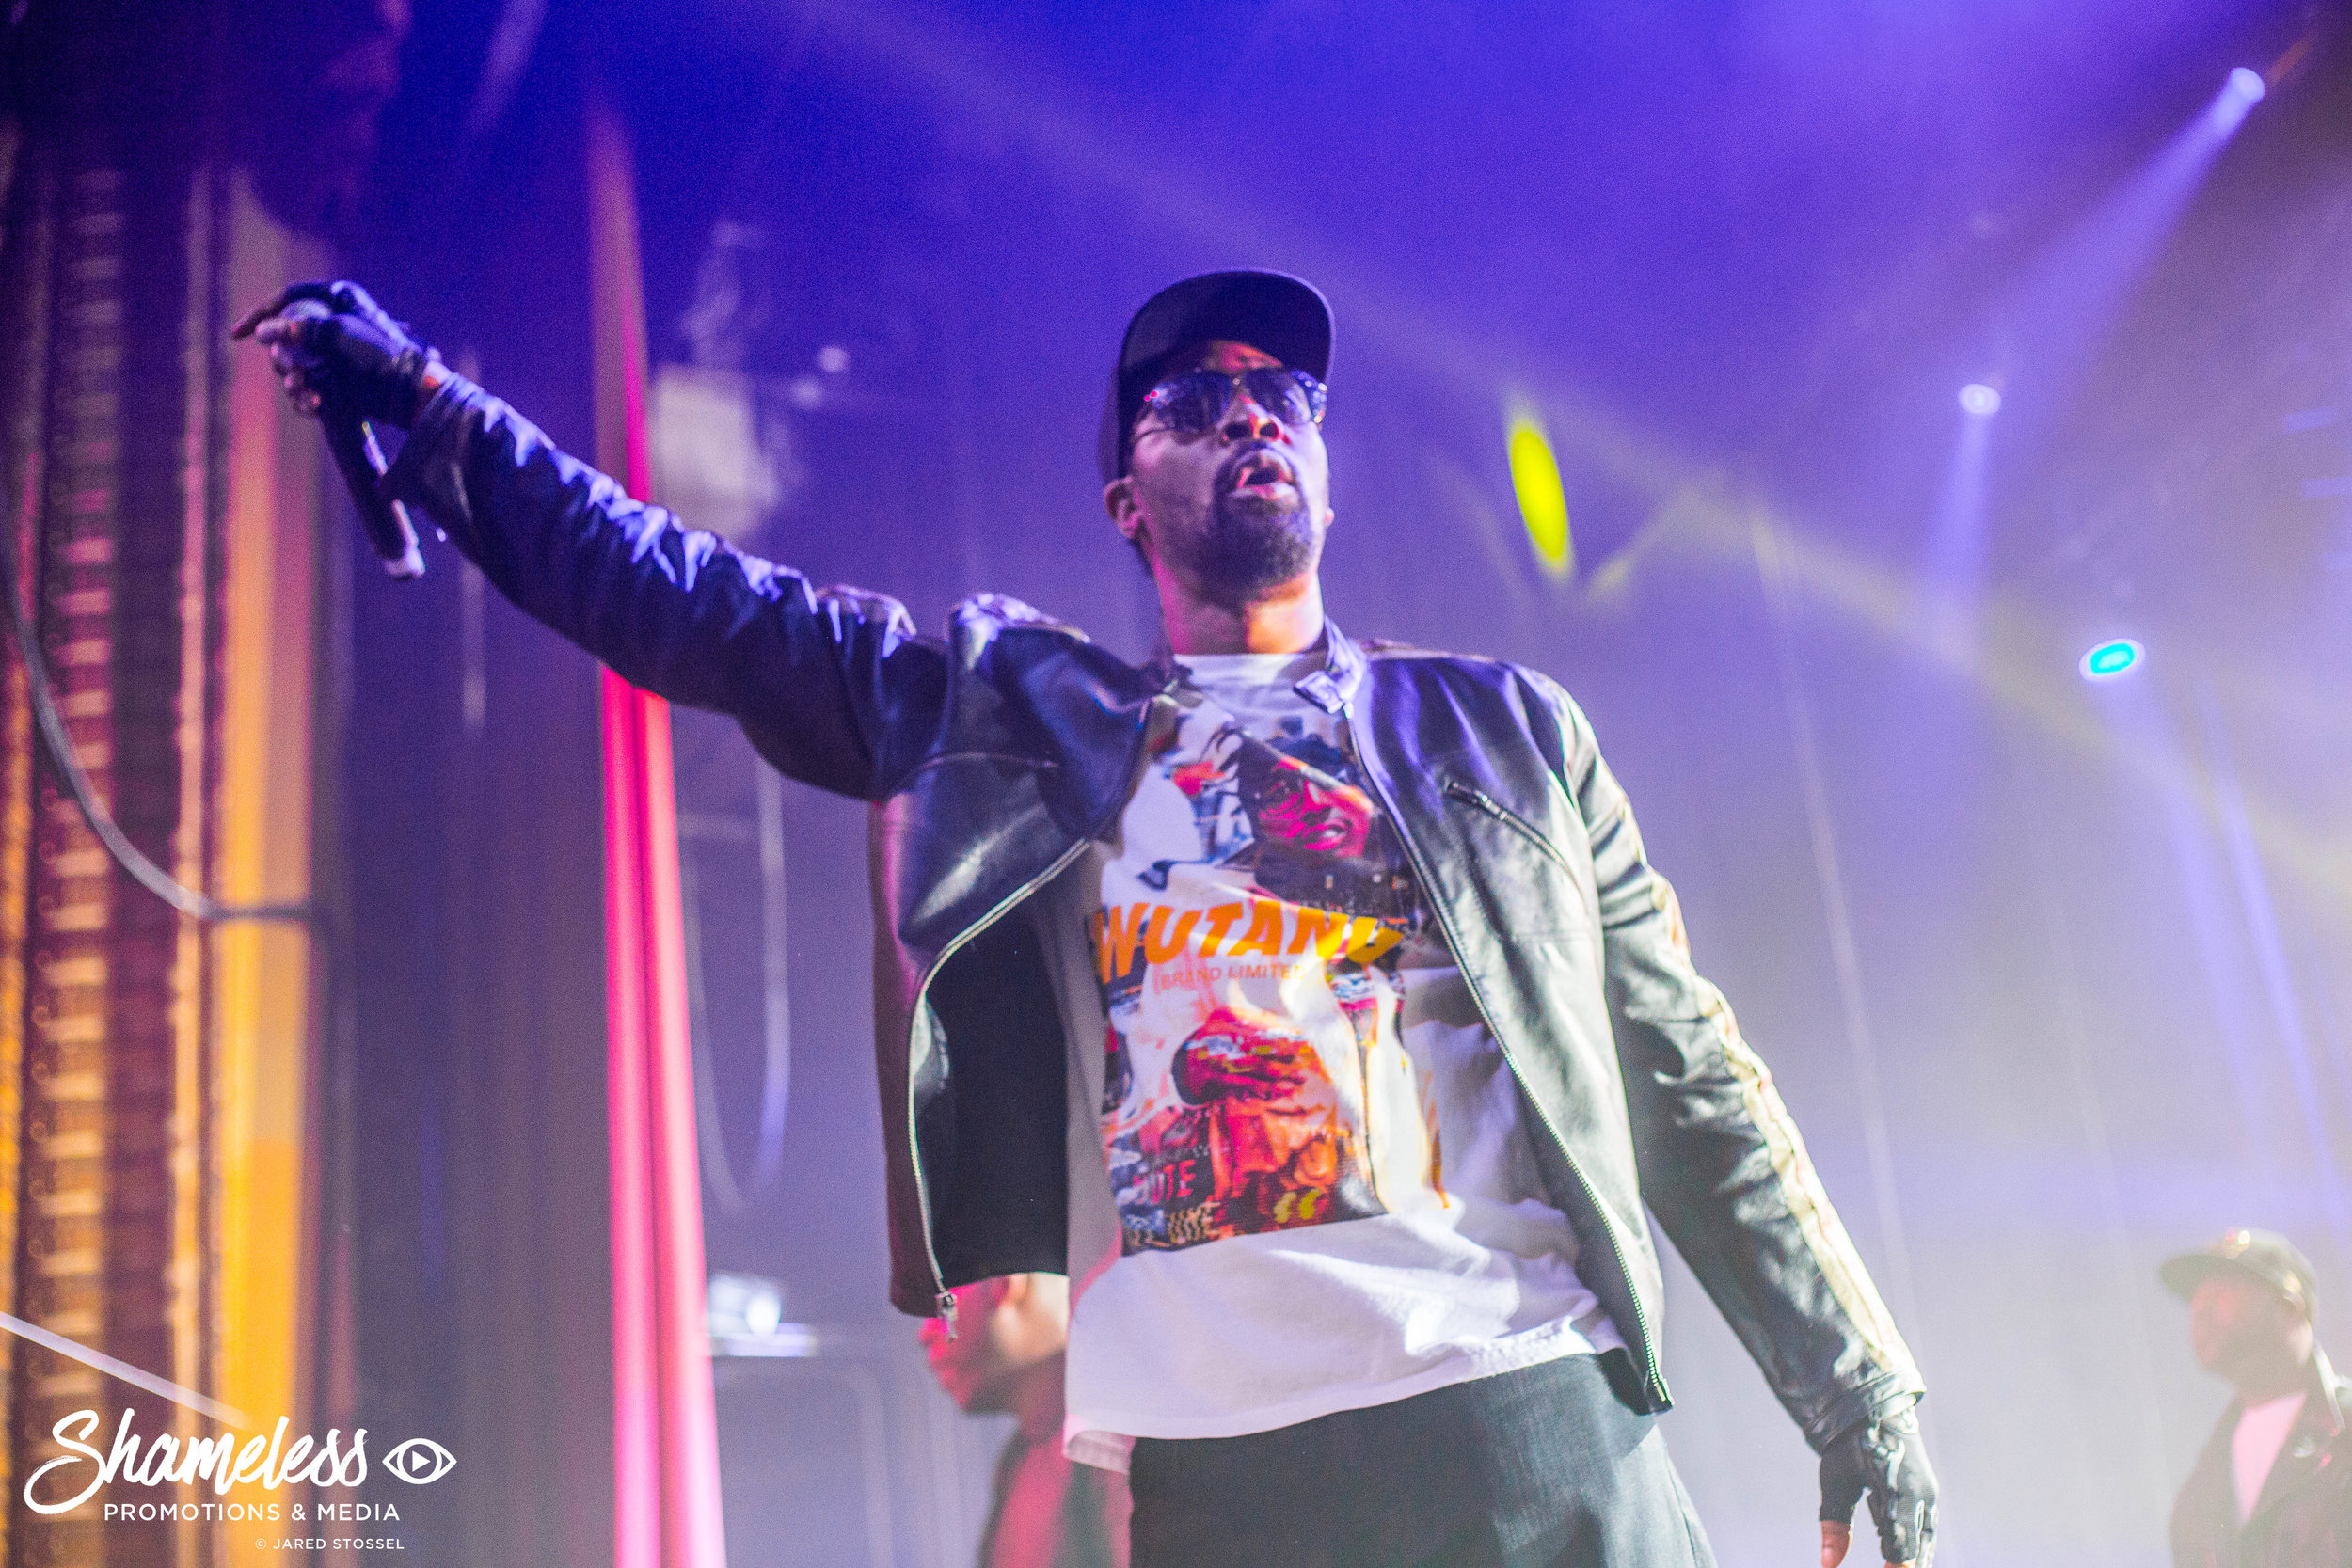 Wu-Tang Clan @ The Warfield: March 2017